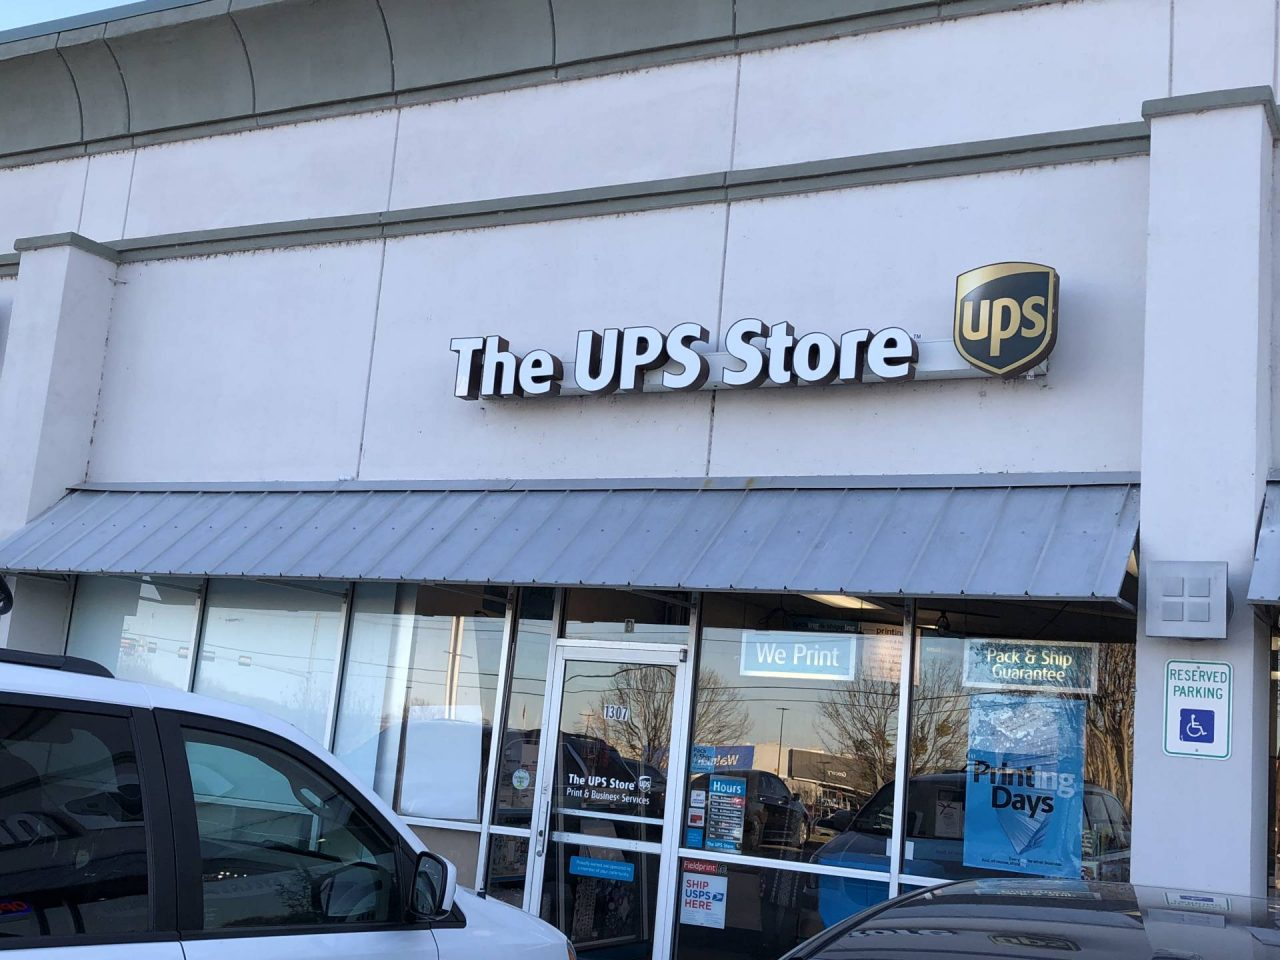 The UPS Store-Shipping, Printing & Business Services